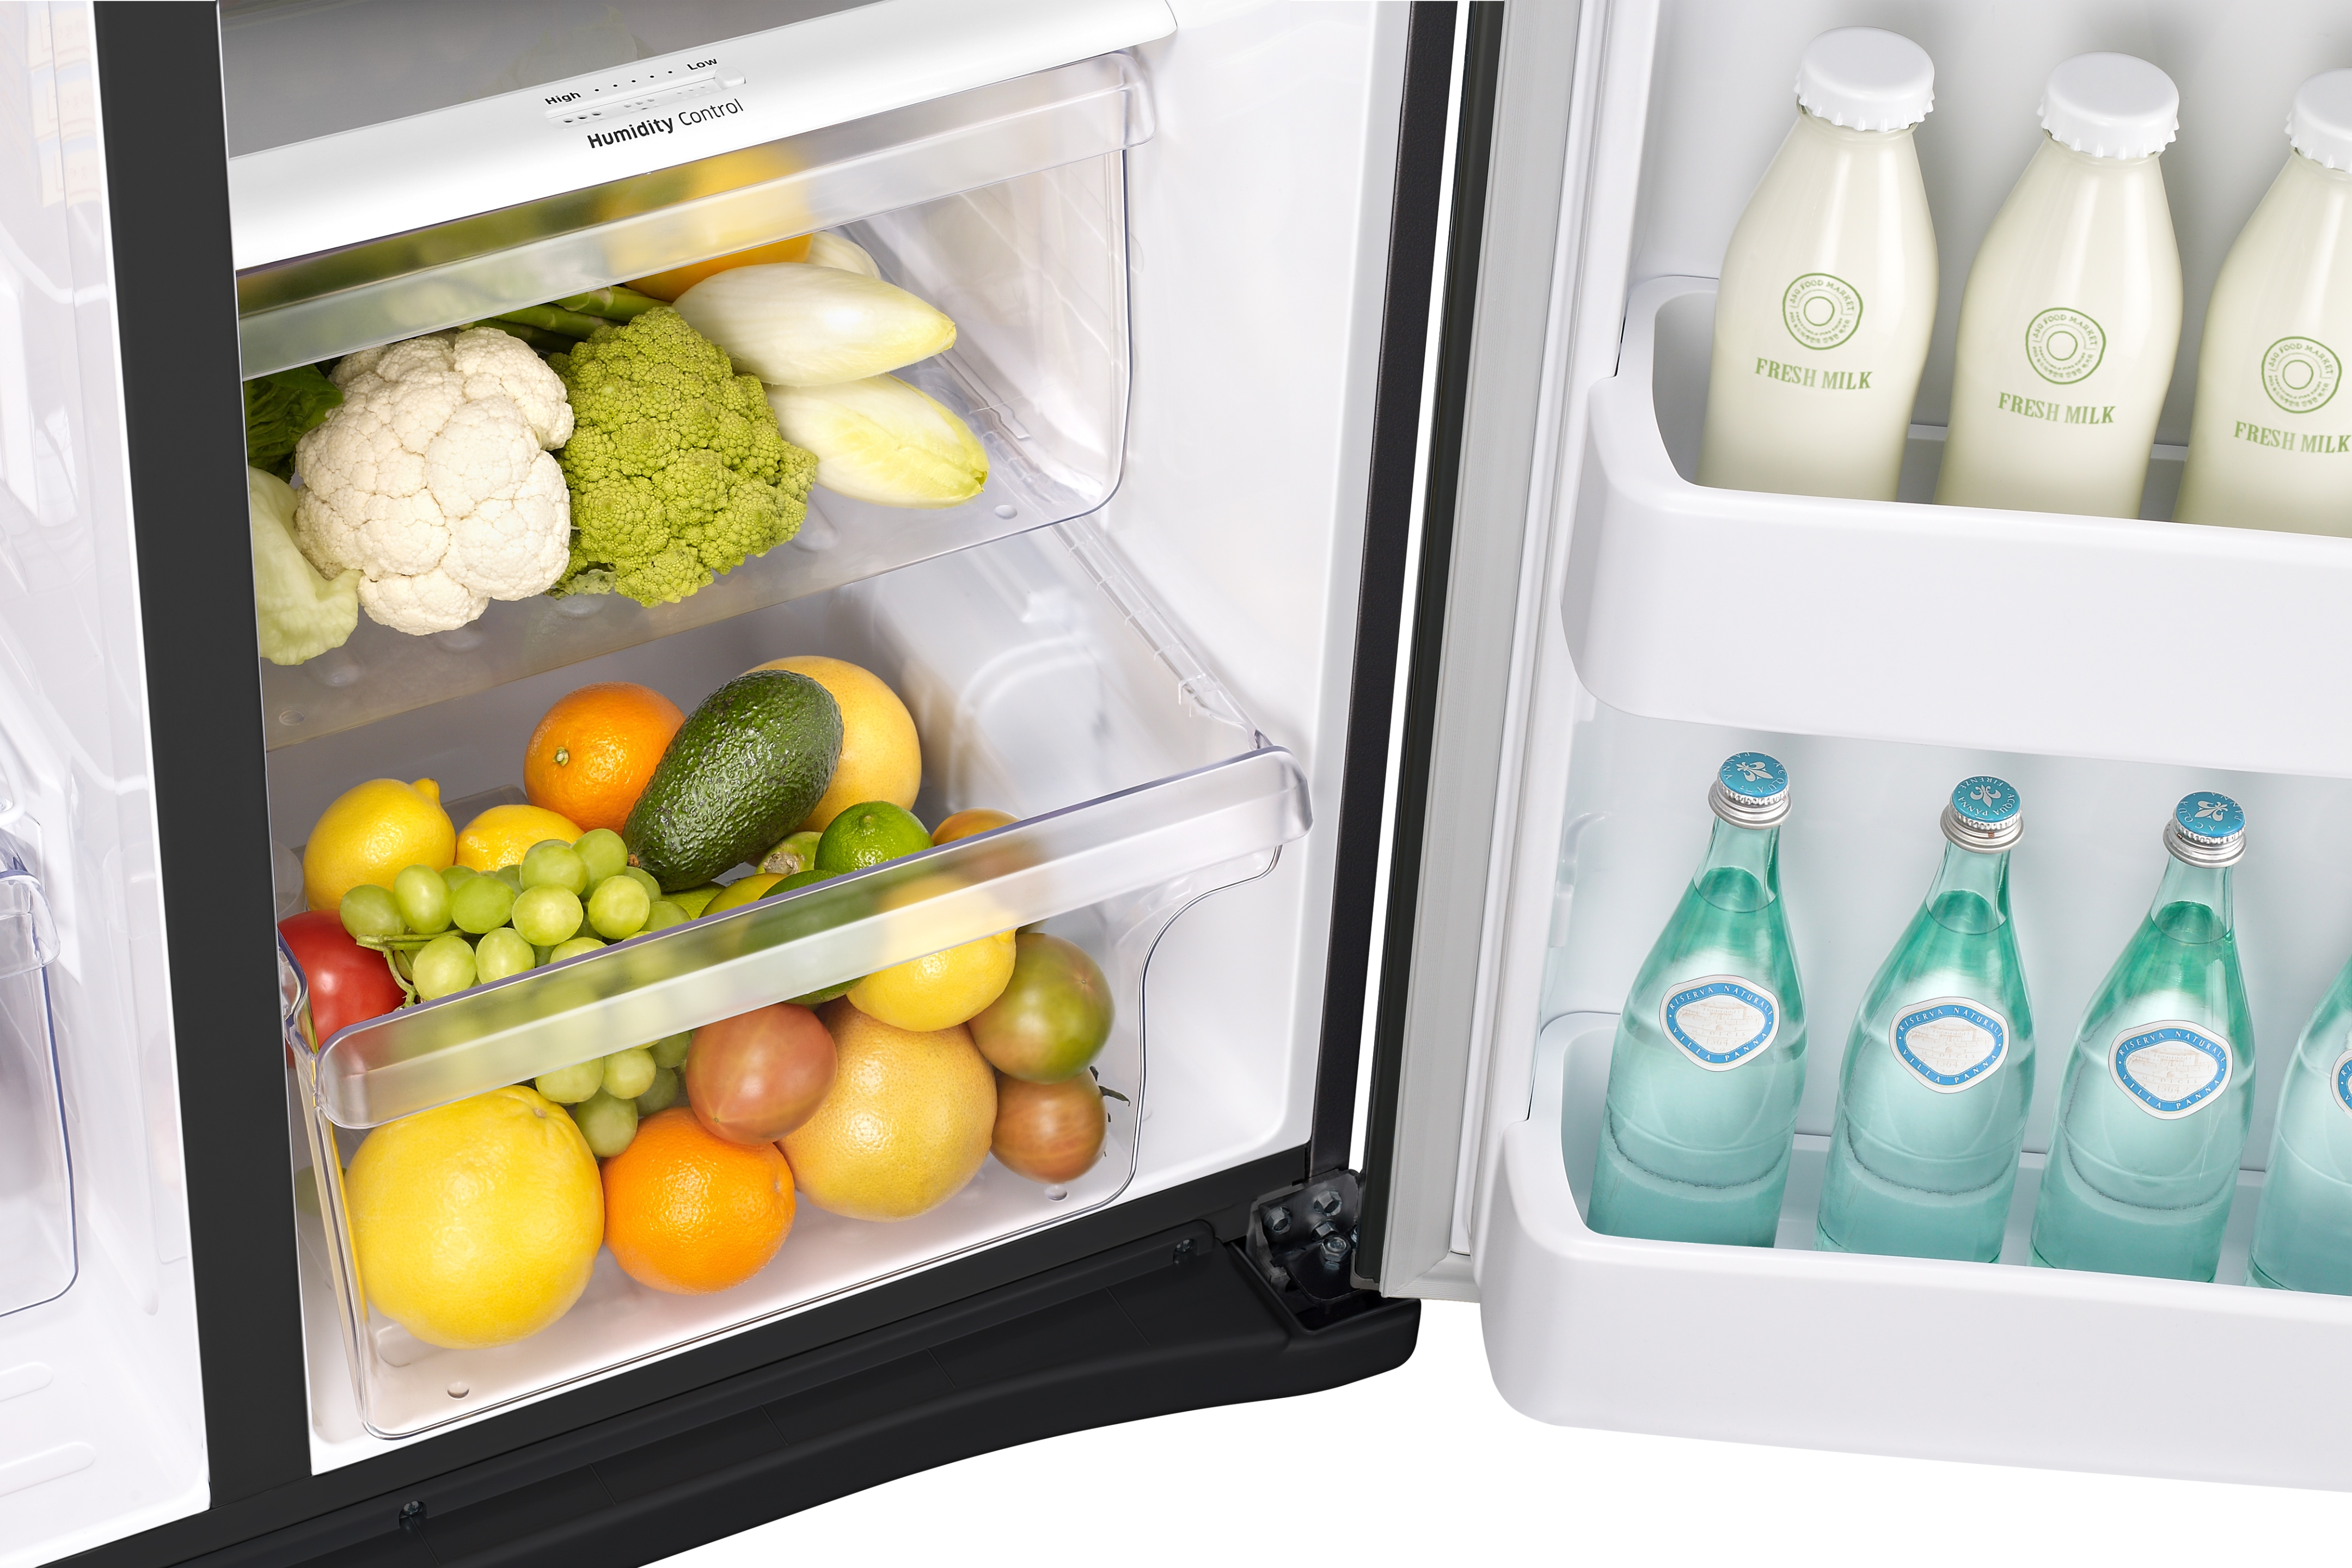 Samsung RS25J500DBC/AA 24.5 cu. ft. Side-By-Side Refrigerator with LED Lighting